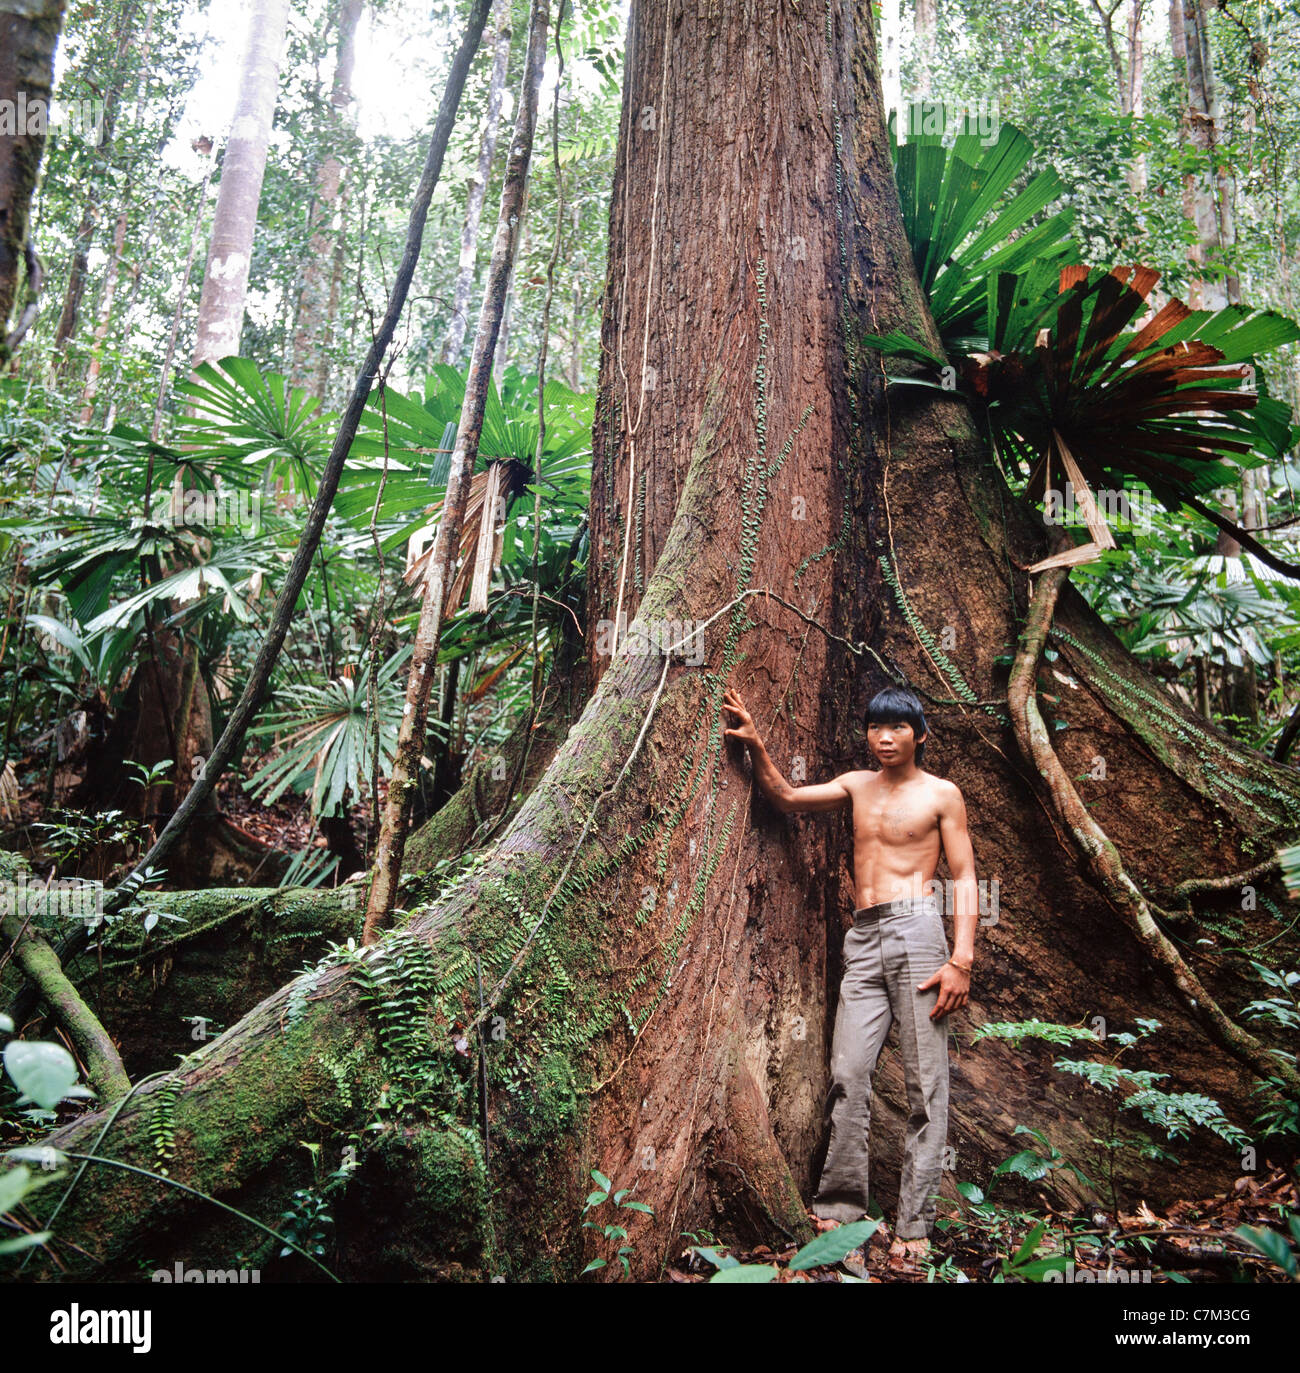 Penan native boy standing by a large buttress rooted hardwood tree, Mulu National Park, Sarawak, Borneo, East Malaysia Stock Photo